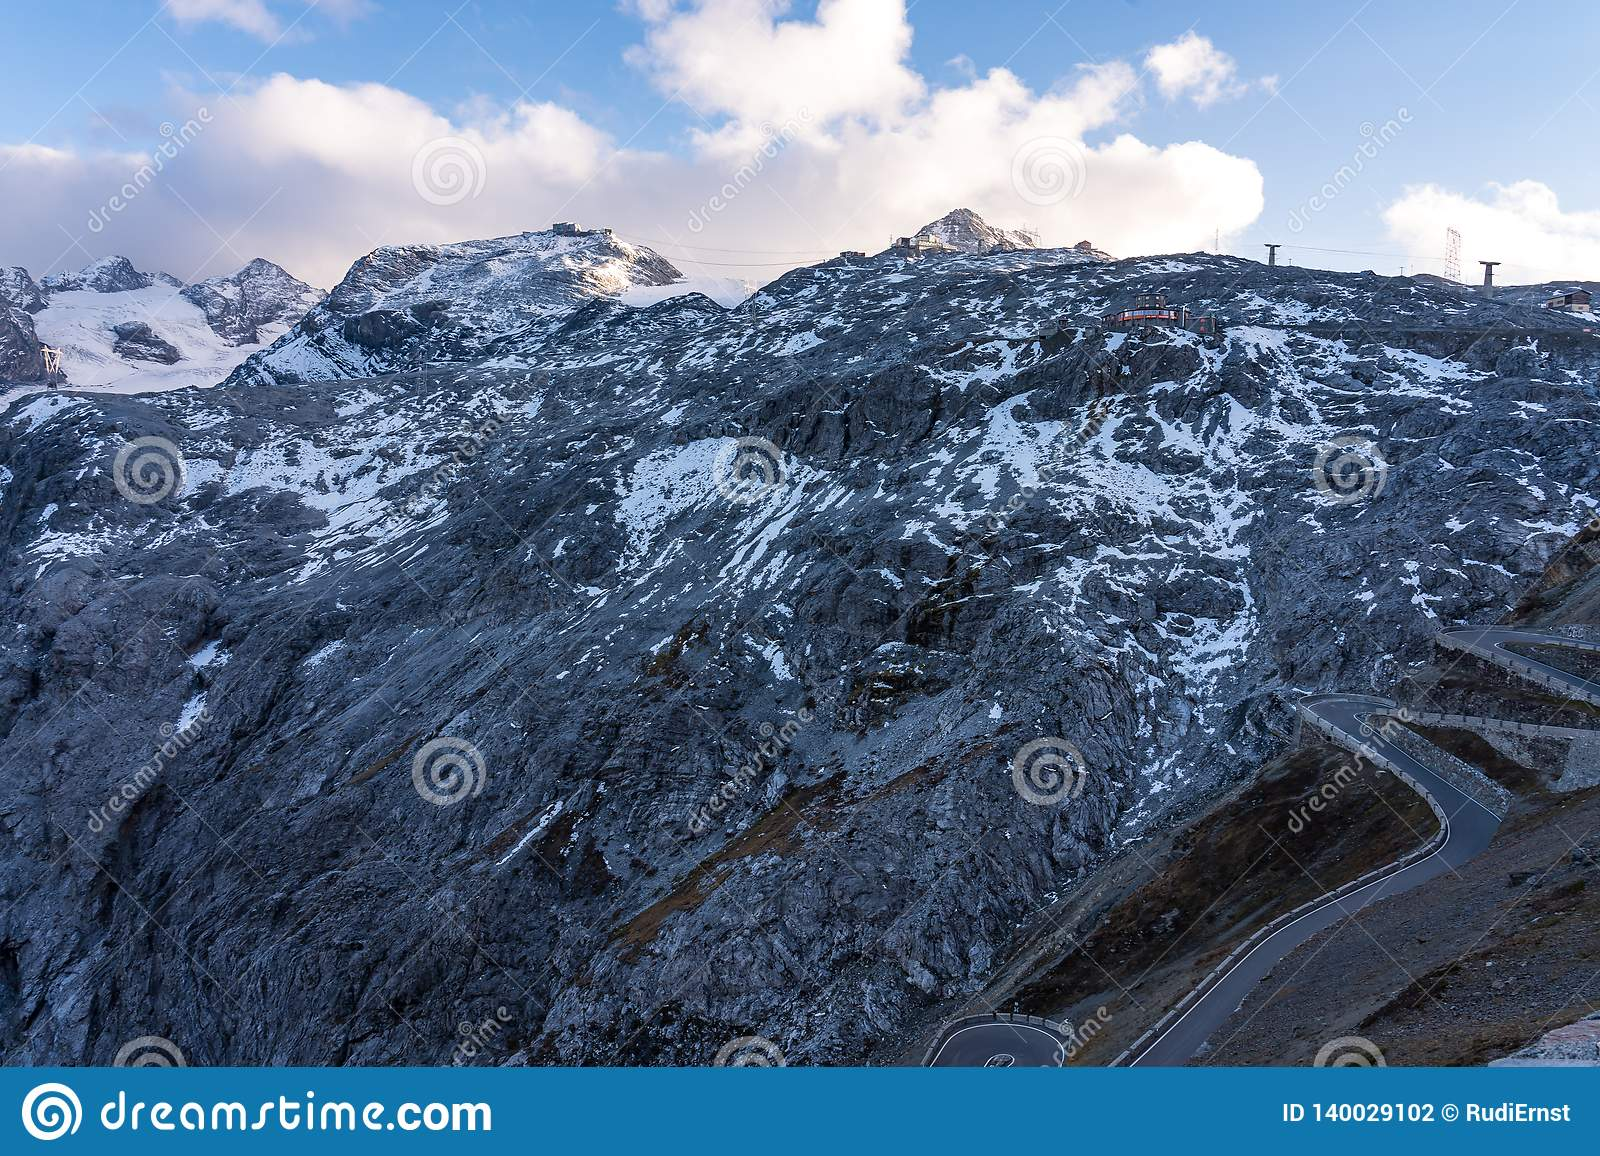 Italy, Stelvio National Park. Famous road to Stelvio Pass in Ortler Alps